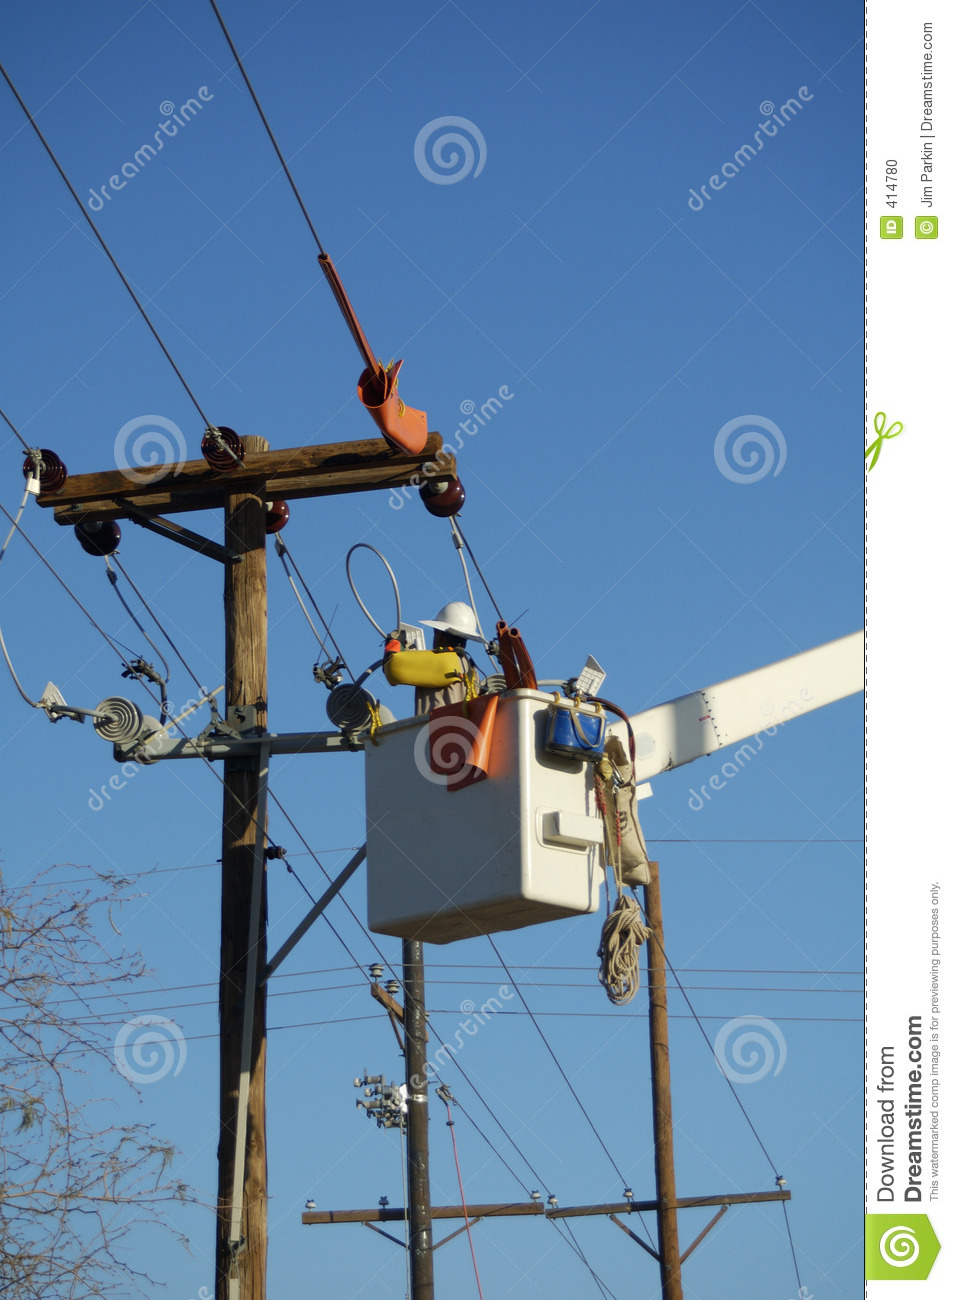 Stock Photo Electric Utility Lineman Image414780 on electrical utility box